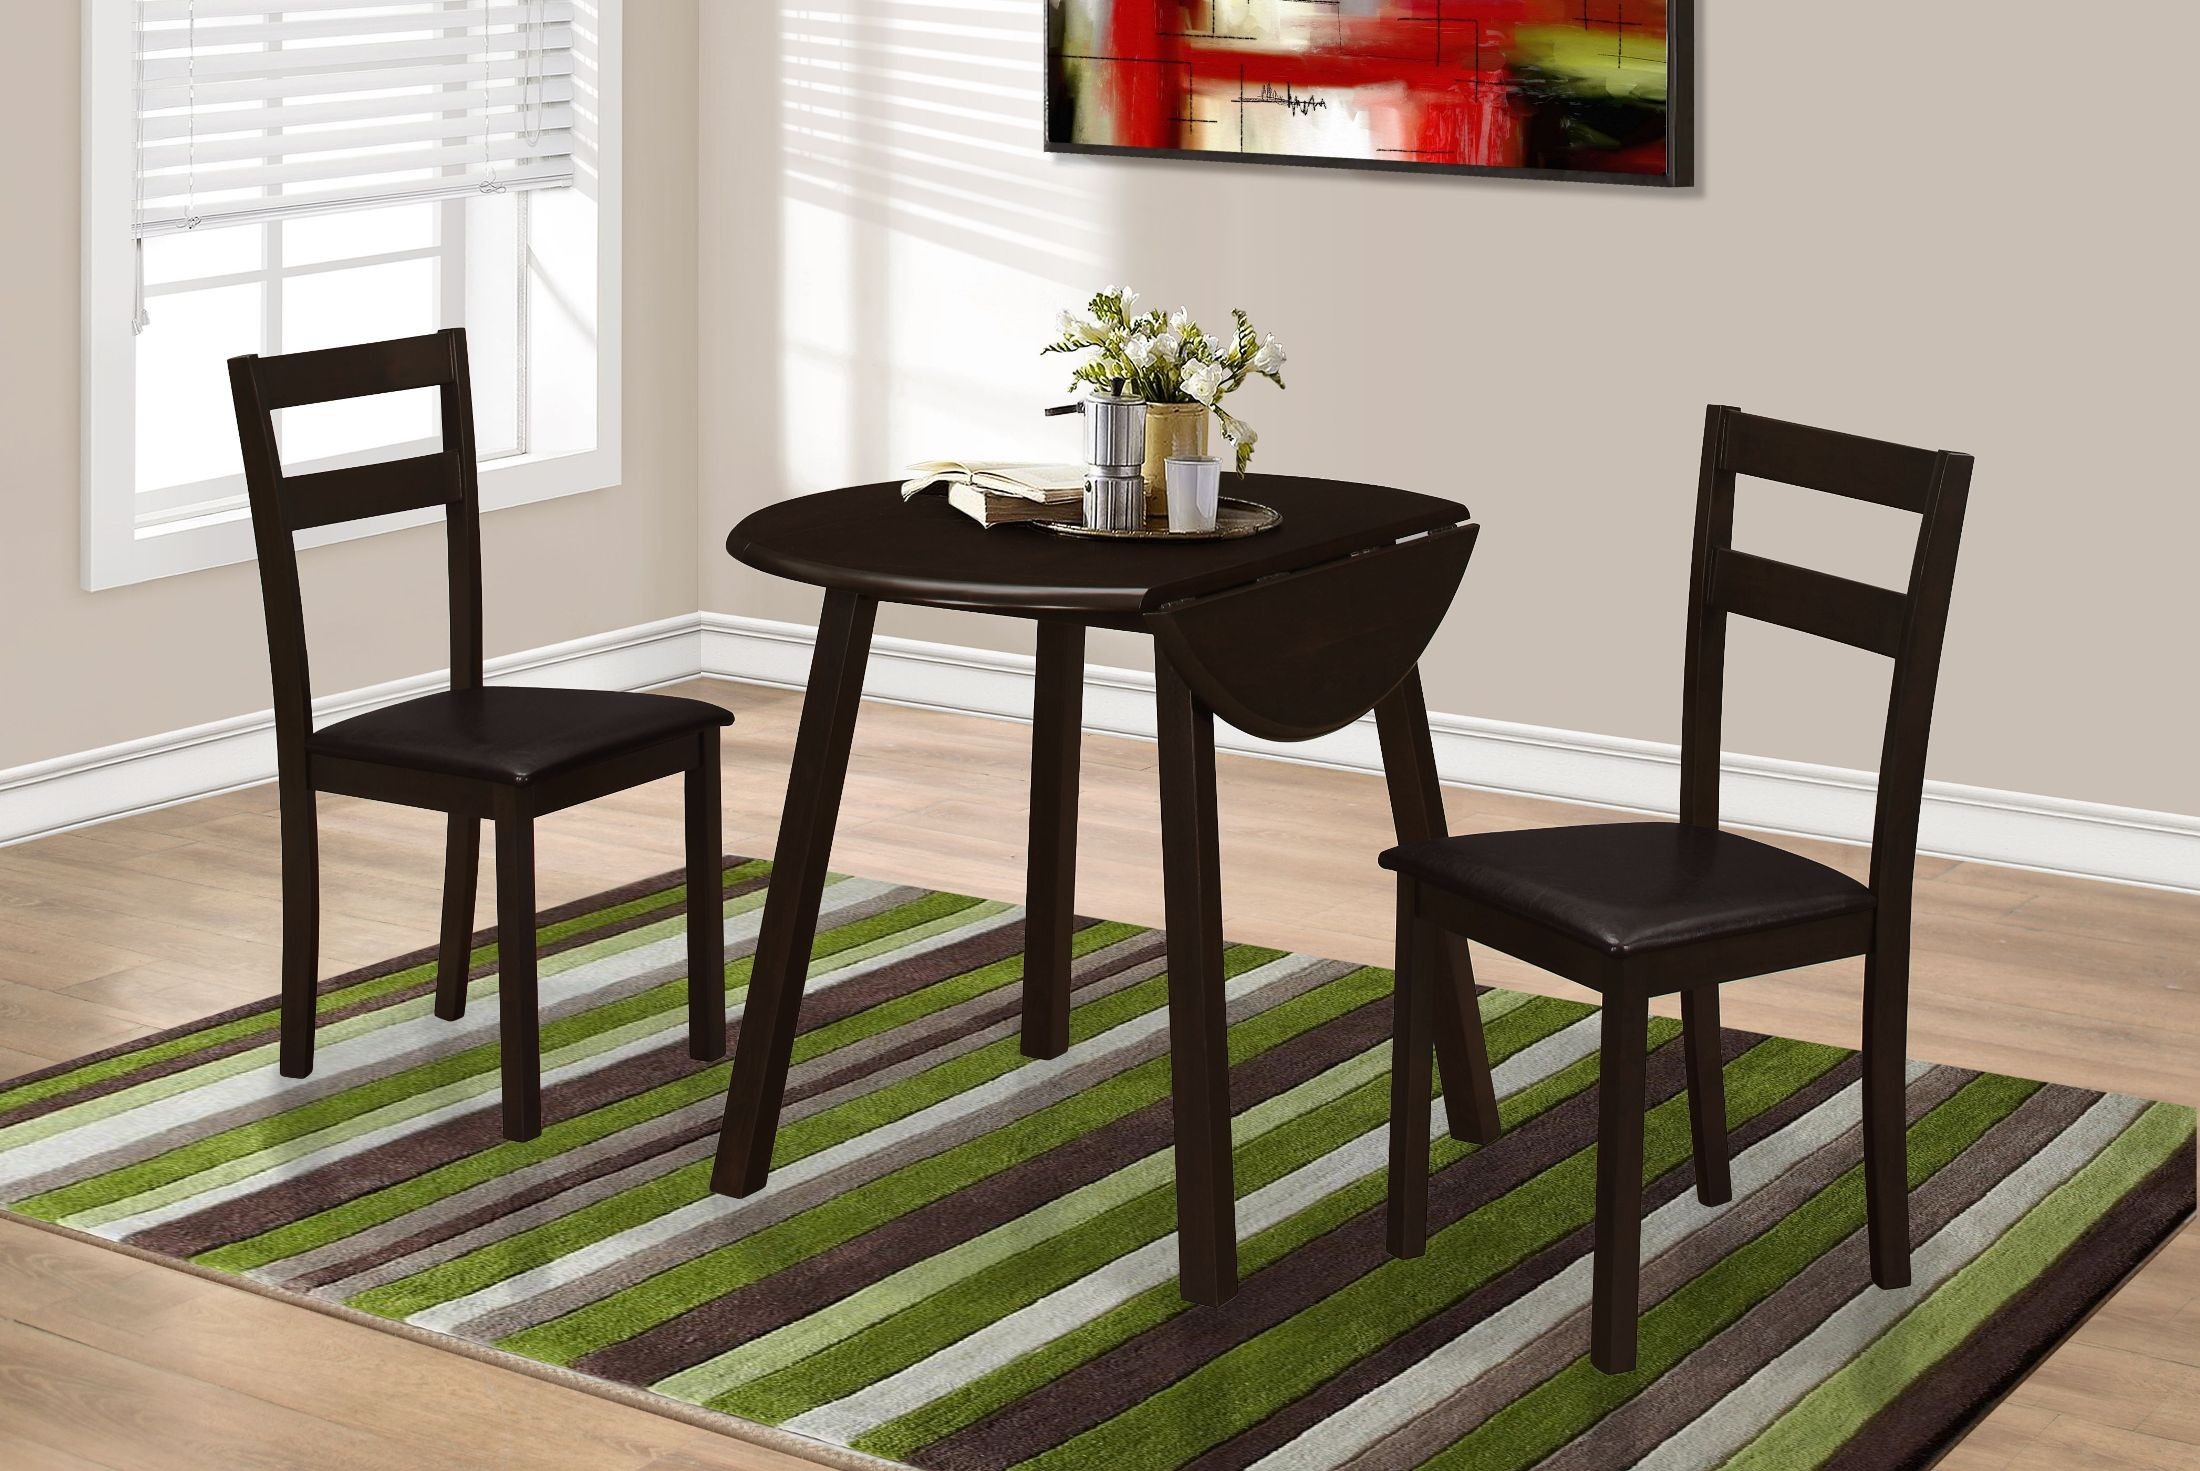 36 cappuccino 3 piece drop leaf dining room set from for 3 piece dining room